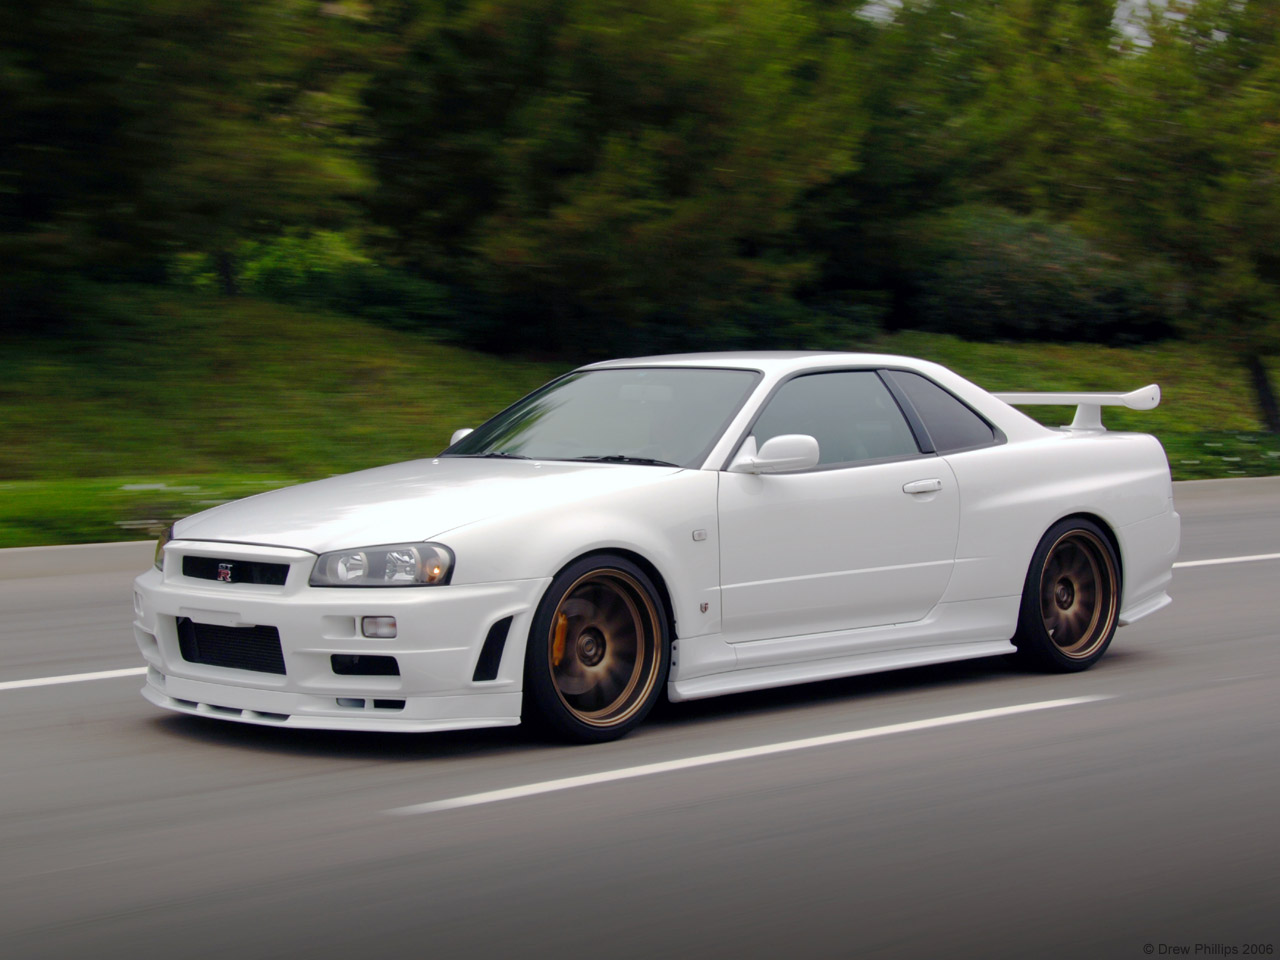 Nissan Skyline R34 GT-R. View Download Wallpaper. 1280x960. Comments